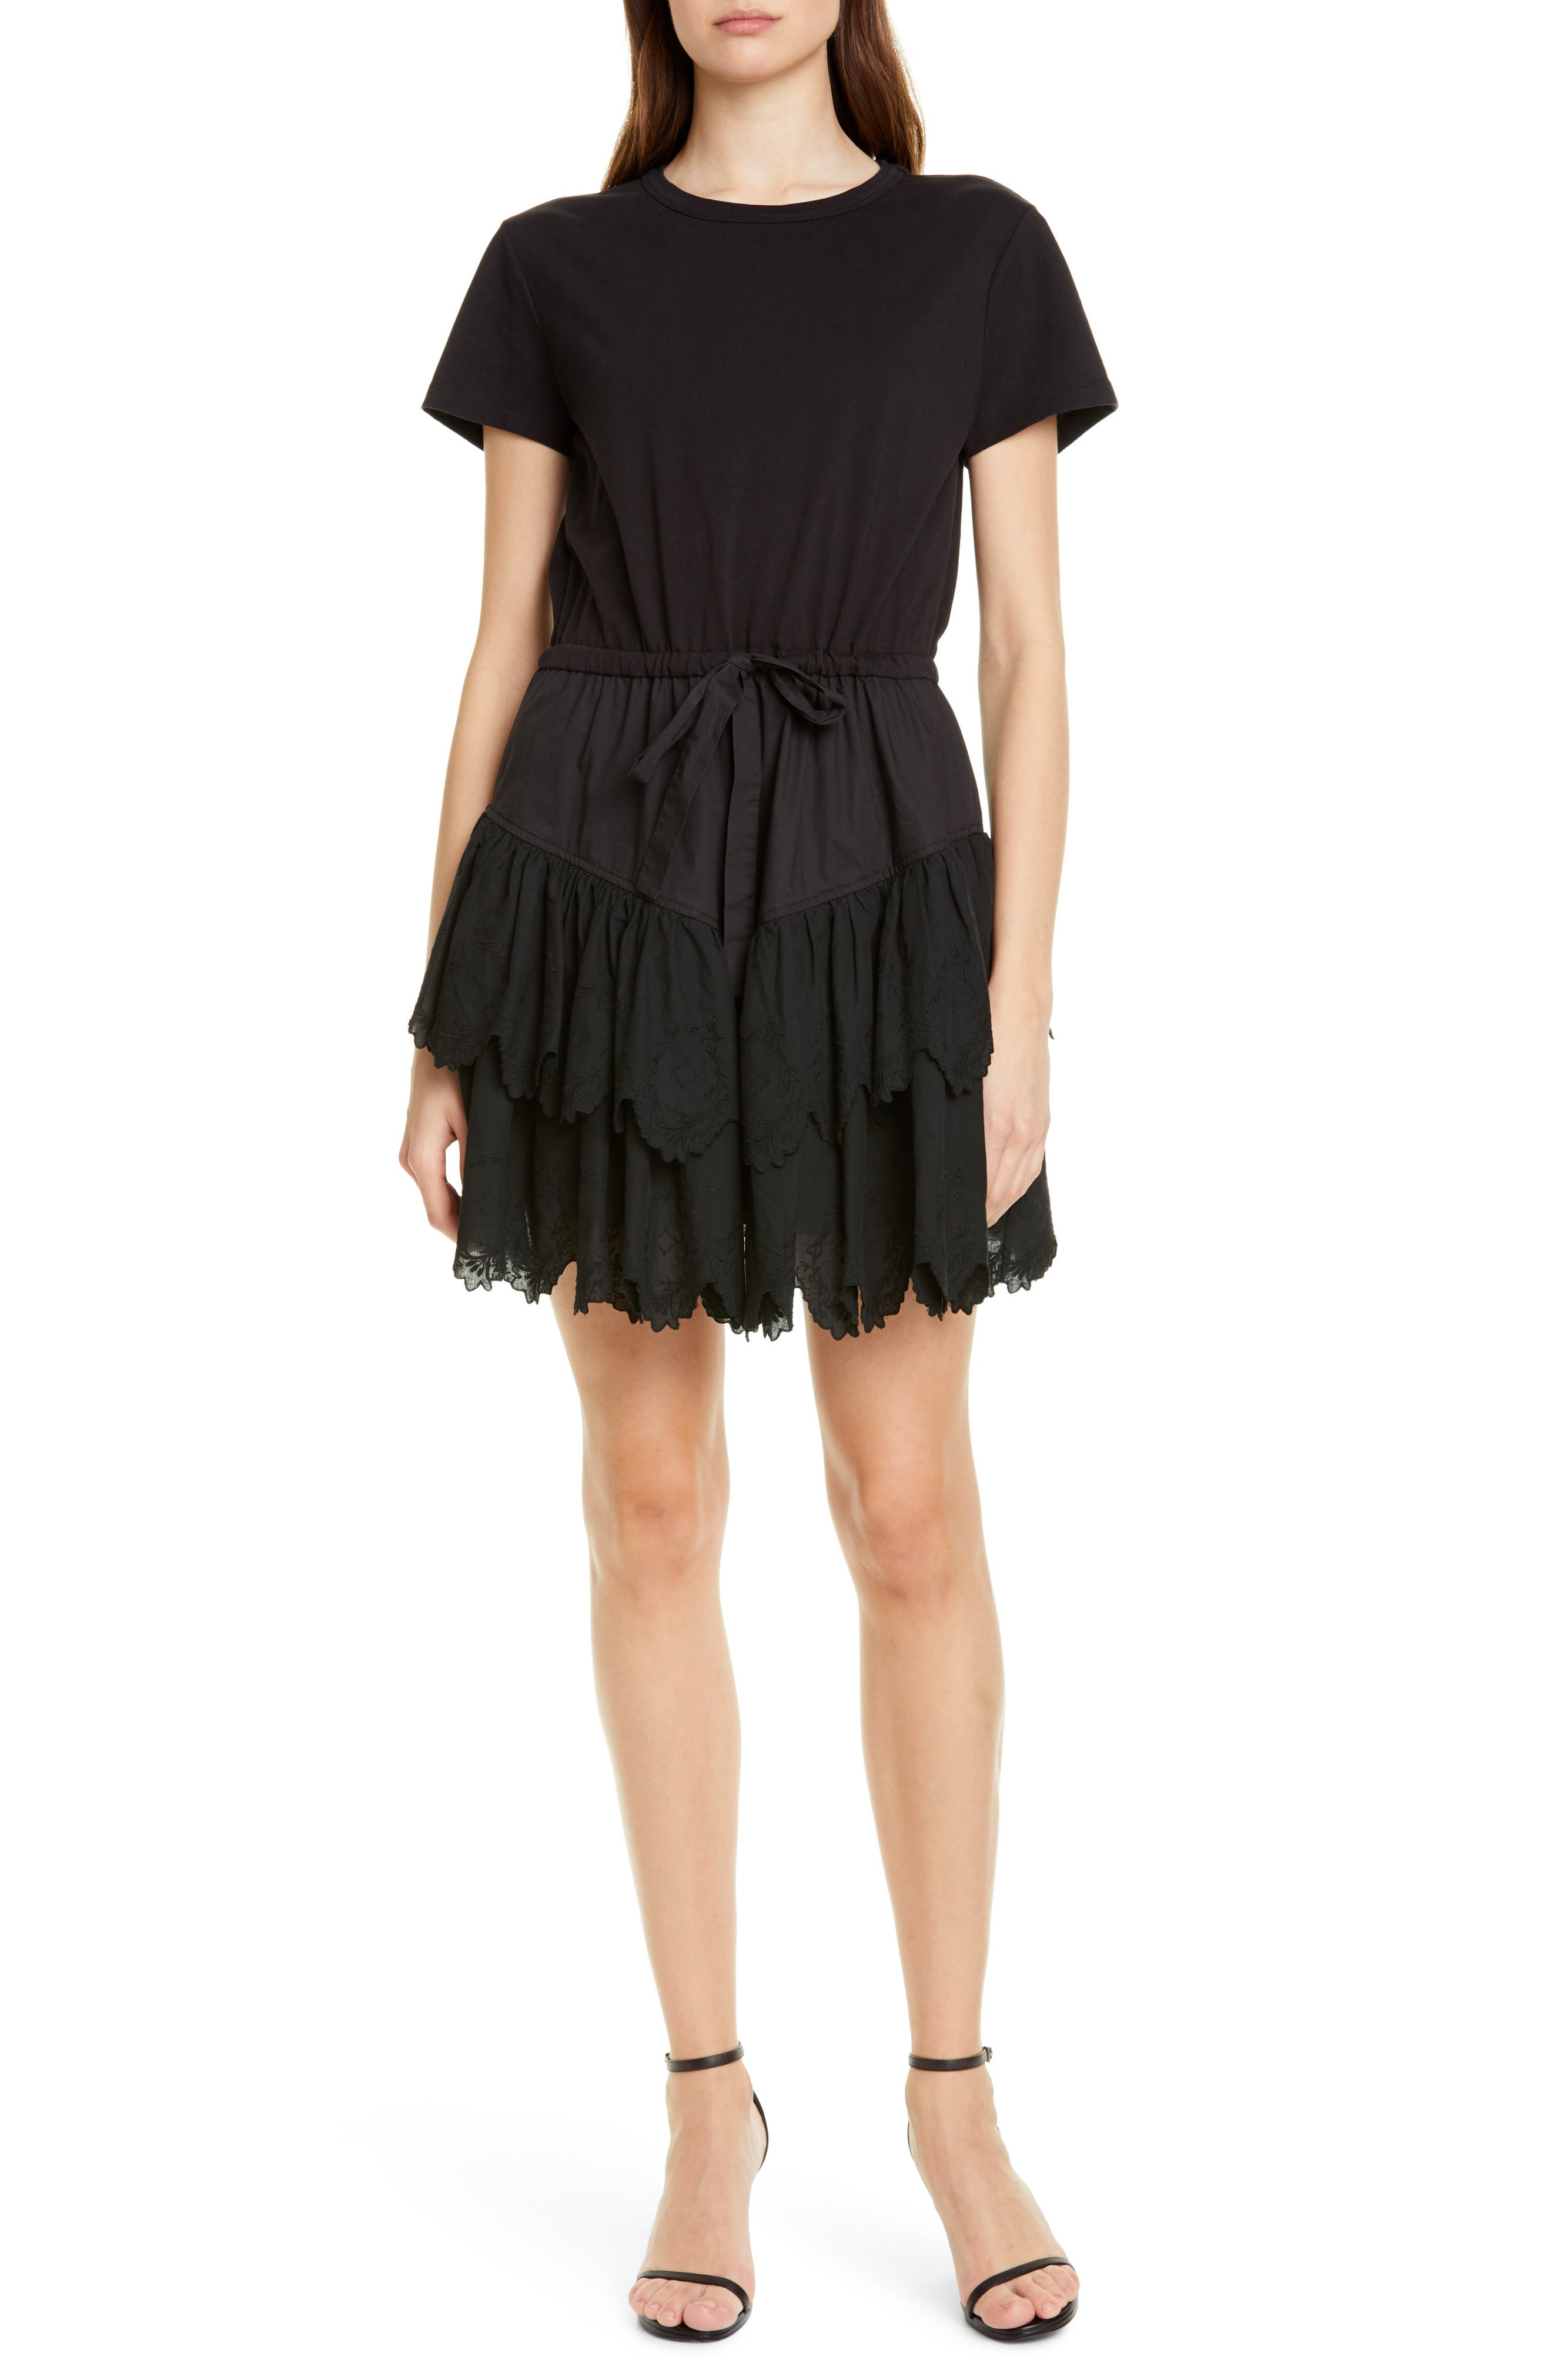 La Vie Rebecca Taylor Lace Detail Tiered Cotton Minidress, Black